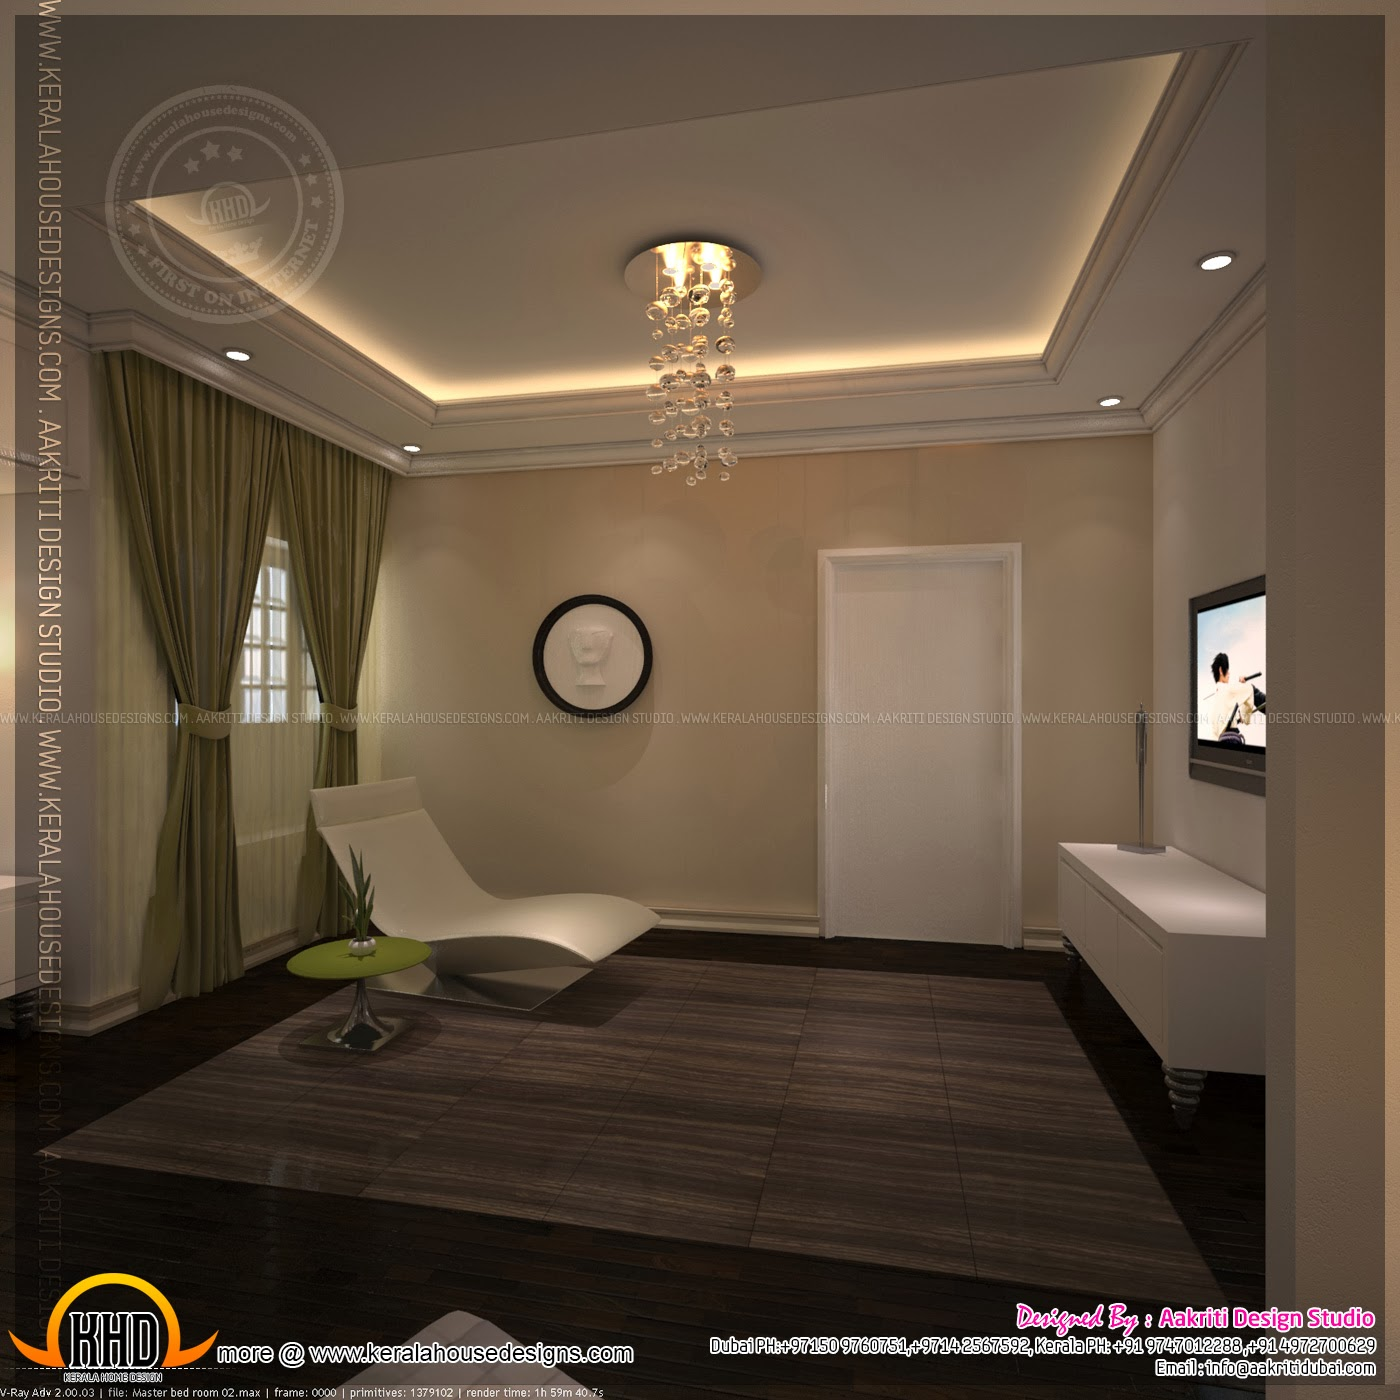 Master bedroom and bathroom interior design kerala home design and floor plans for Interior designs for bedrooms indian style